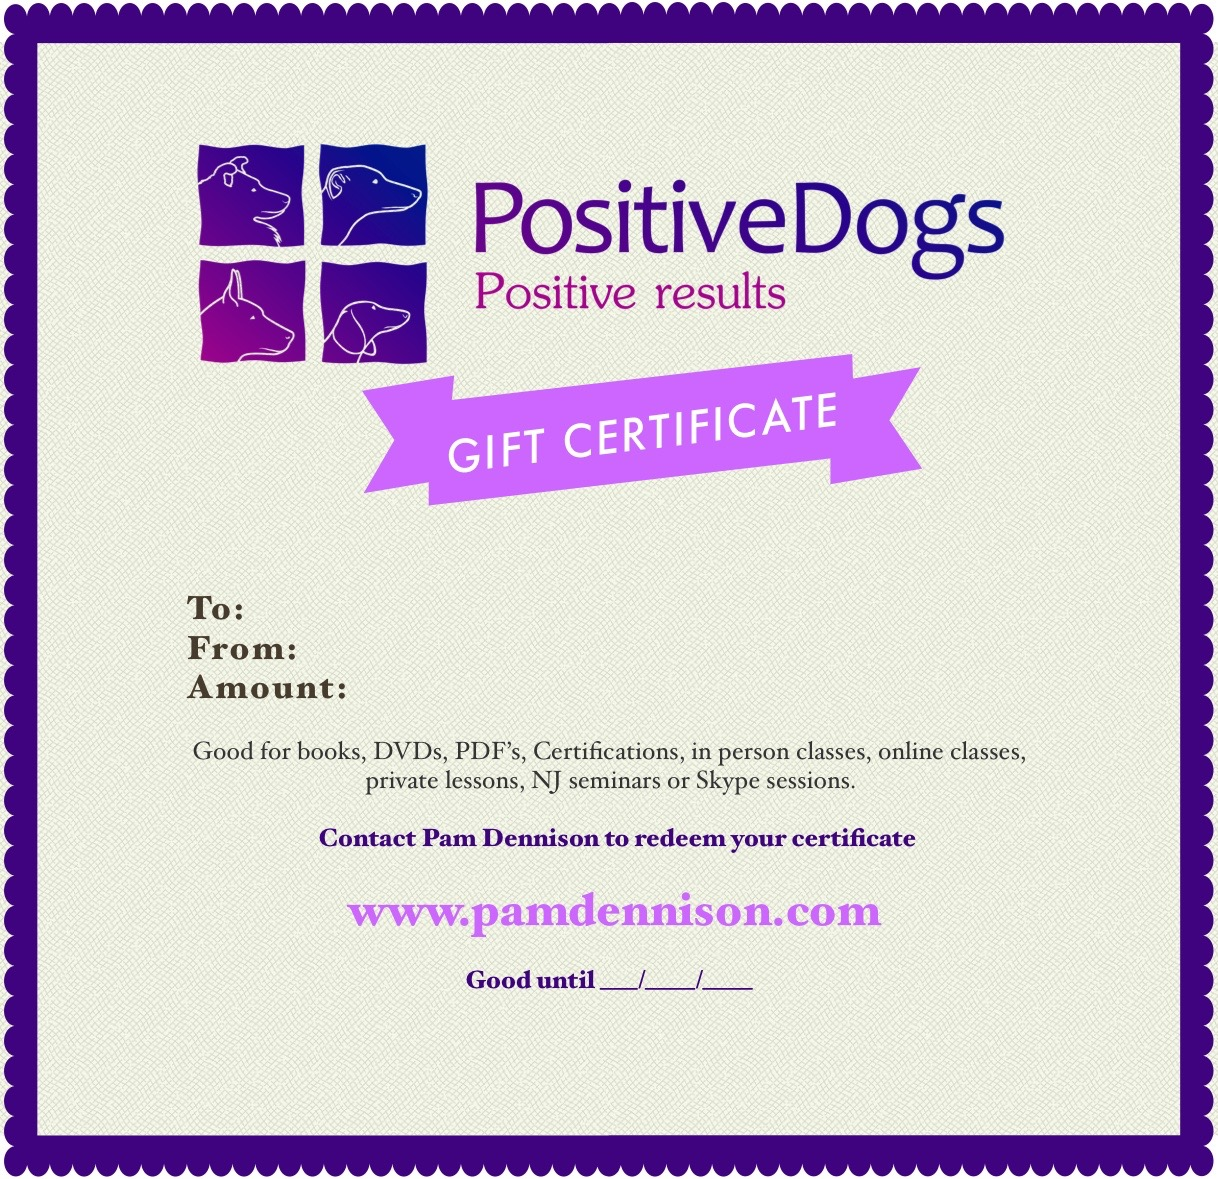 Gift certificate positive motivation dog training gift certificate xflitez Image collections